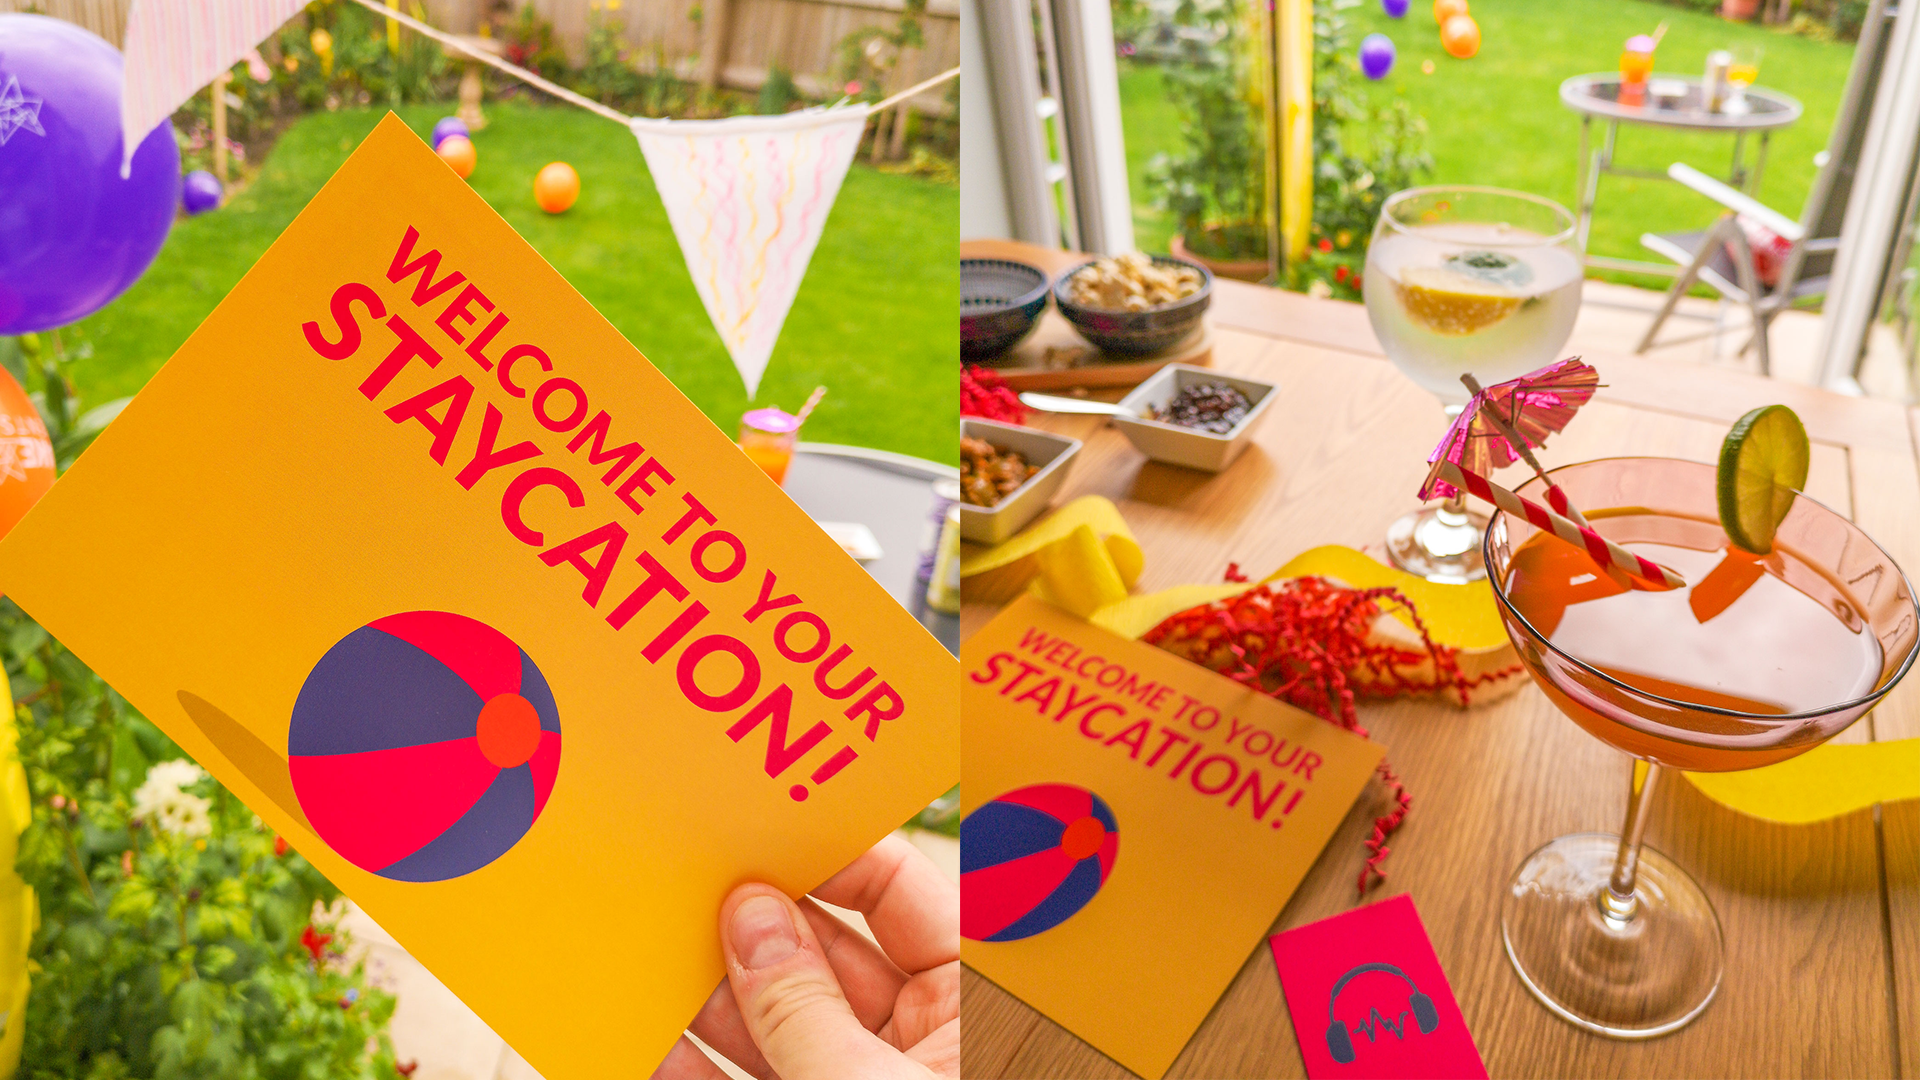 Make Events | Corporate and Virtual Events Company Manchester | Staycation invitation